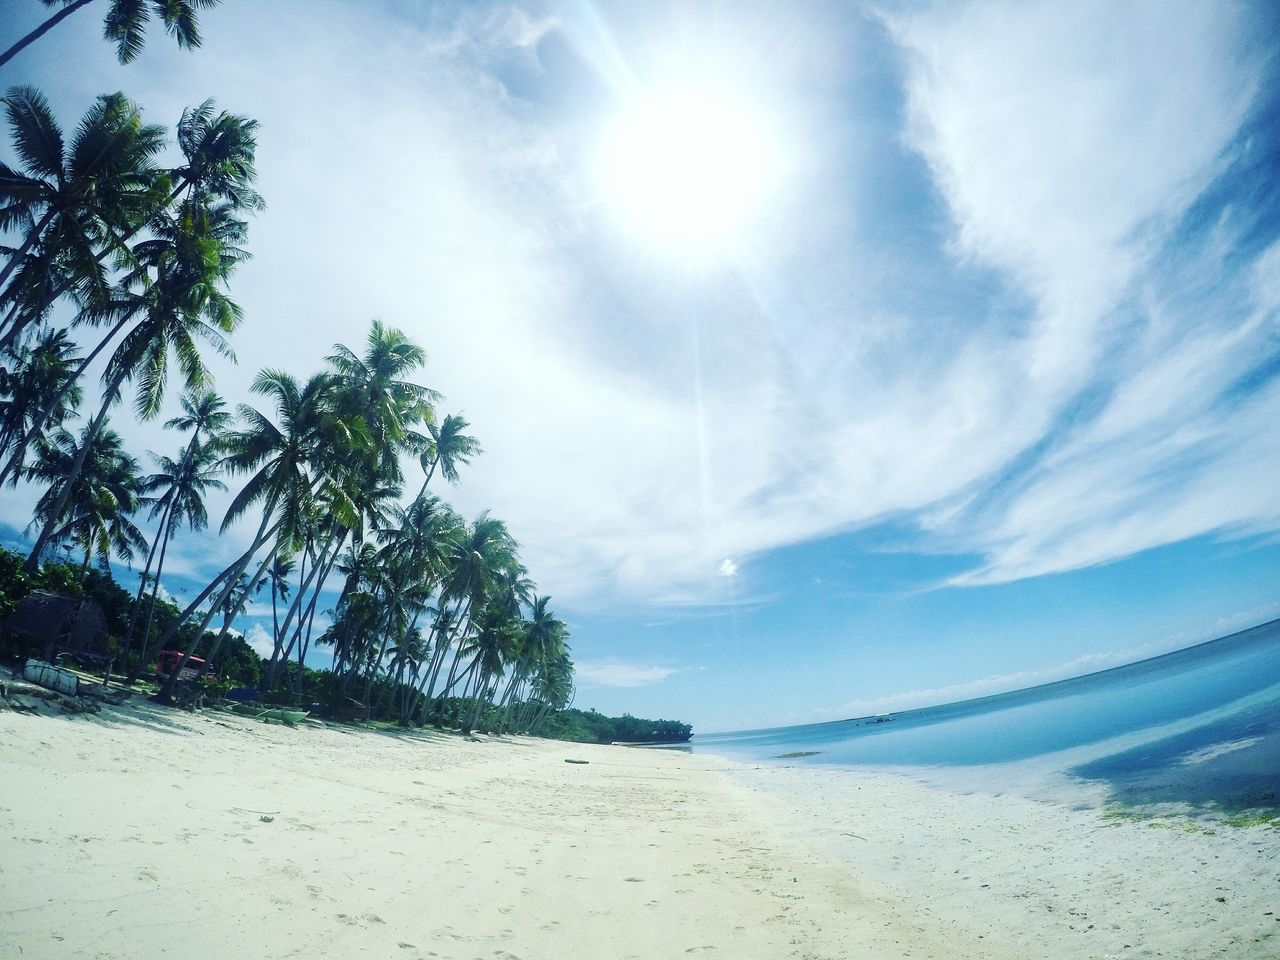 Paliton Beach San Juan Siquijor Philippines New Talent EyeEmNewHere First Eyeem Photo Eyeem Philippines Travel Travel Photography GoPro Hero 4 GoPrography Beach Nature Beauty In Nature Tree Sky Sea Sand Scenics Tranquility Sunlight No People Cloud - Sky Outdoors